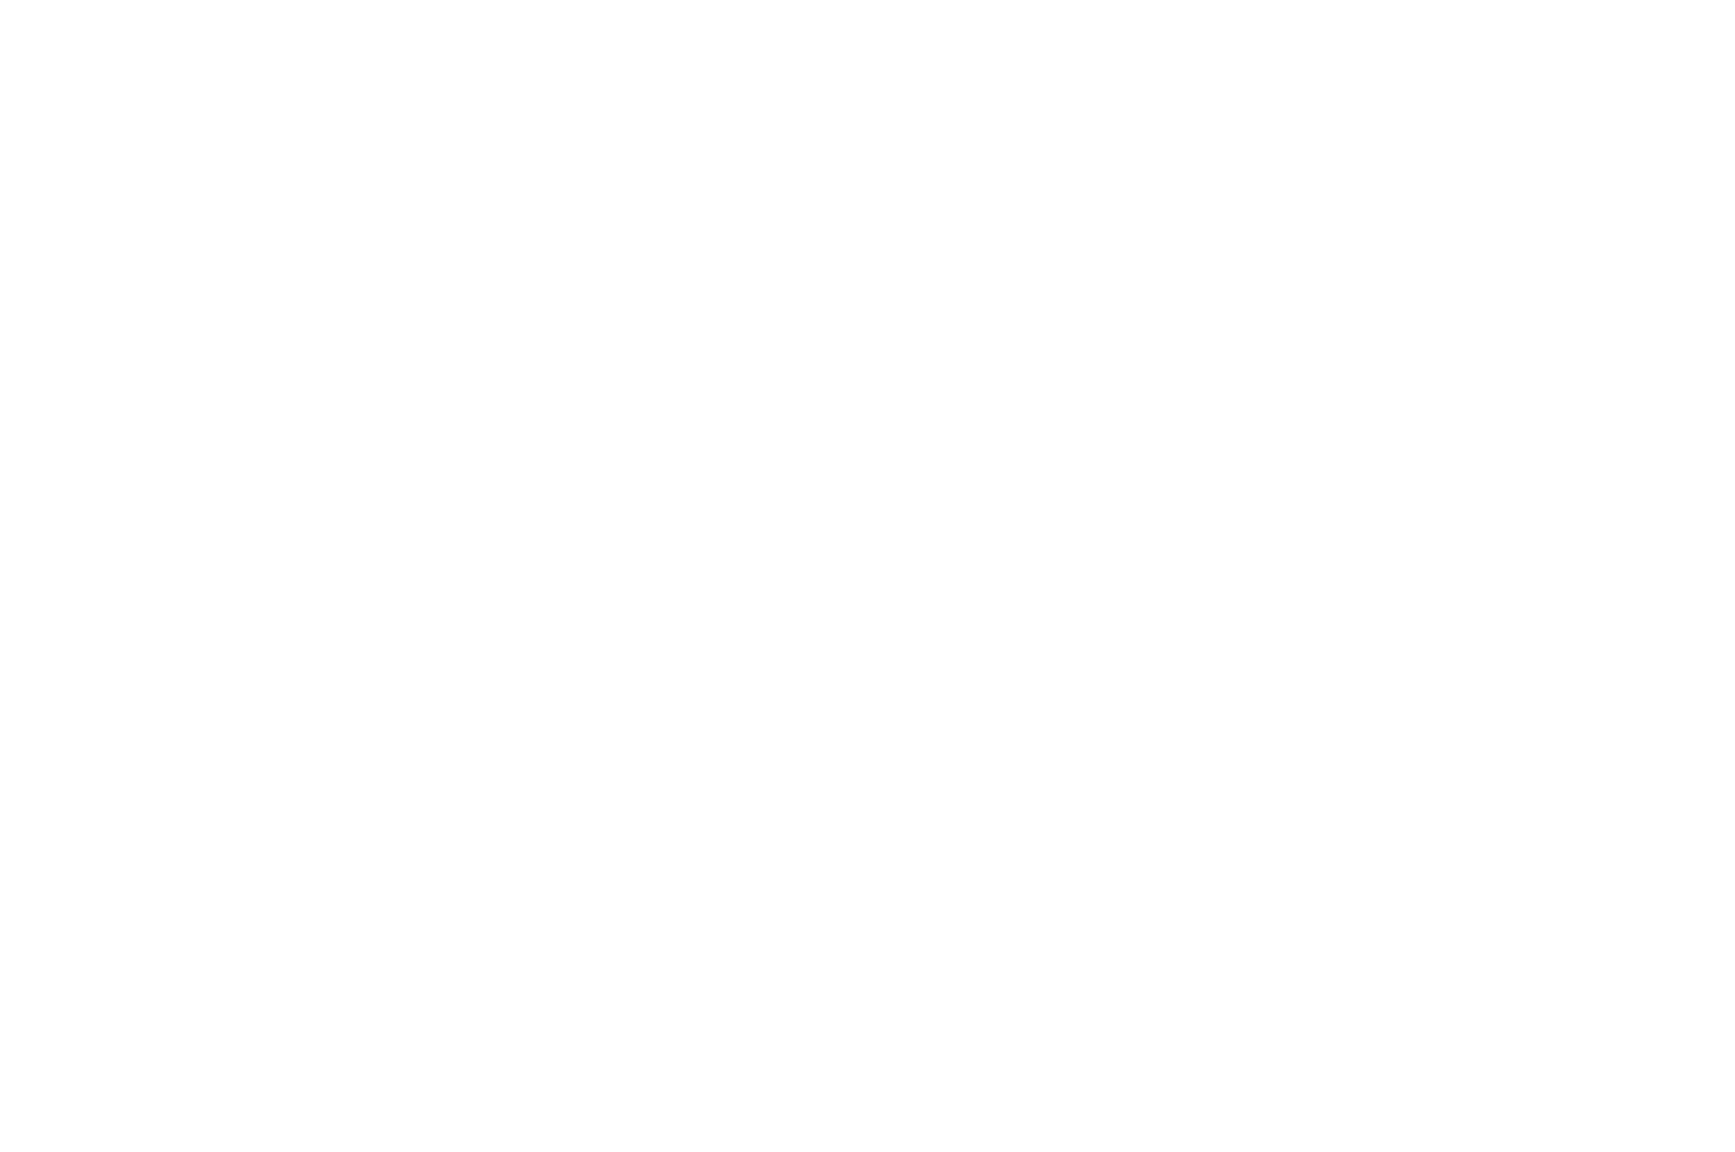 OFFICIAL SELECTION - Sarajevo Fashion Film Festival - 2017 (1).png